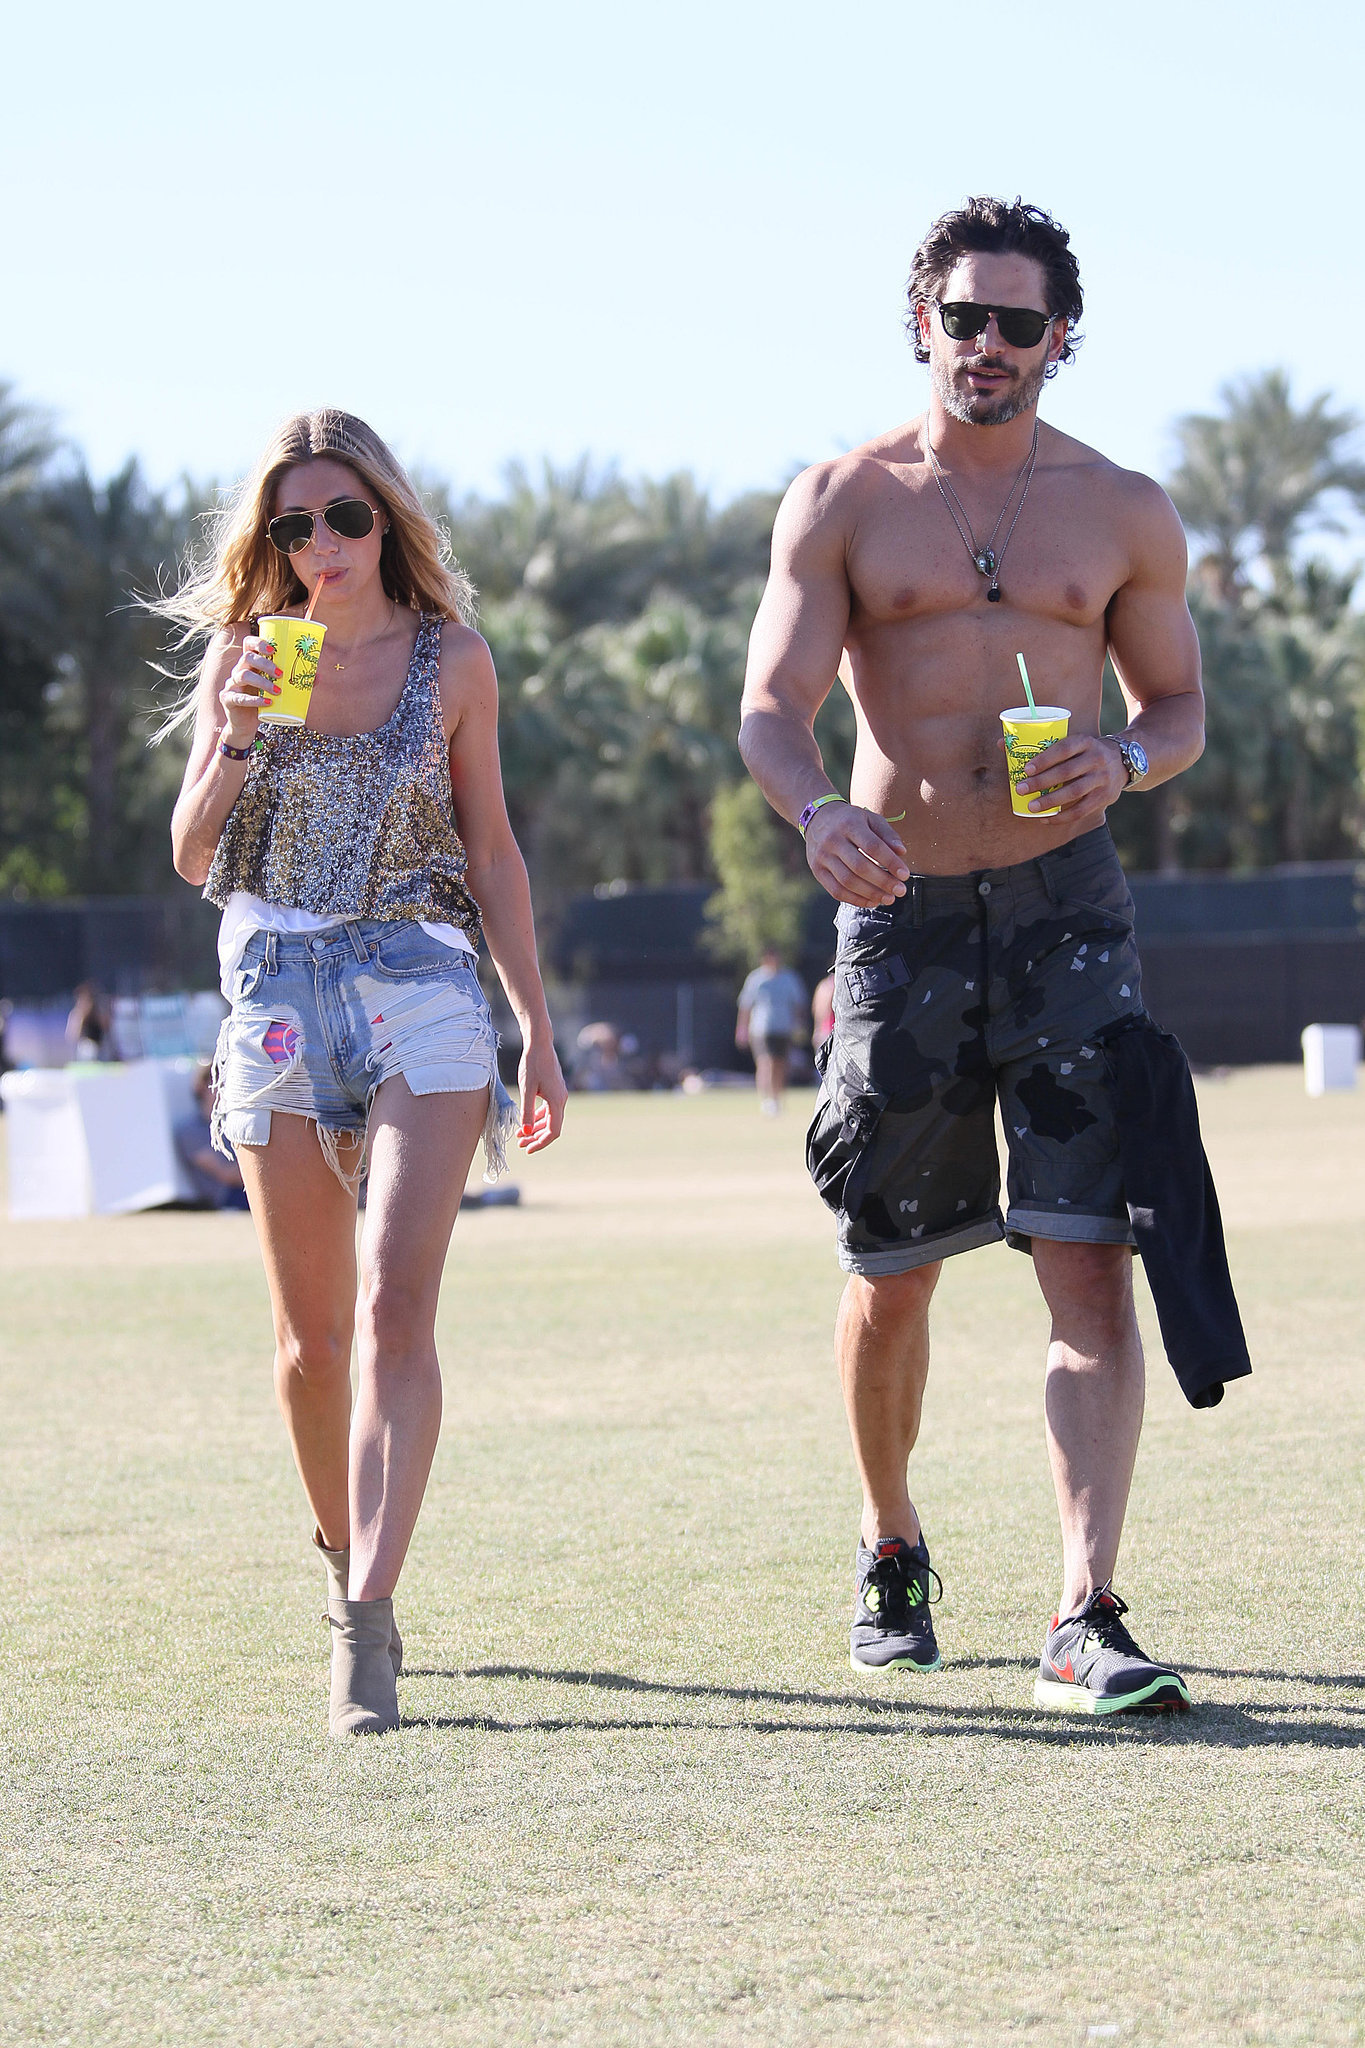 Joe Manganiello went shirtless in the deser